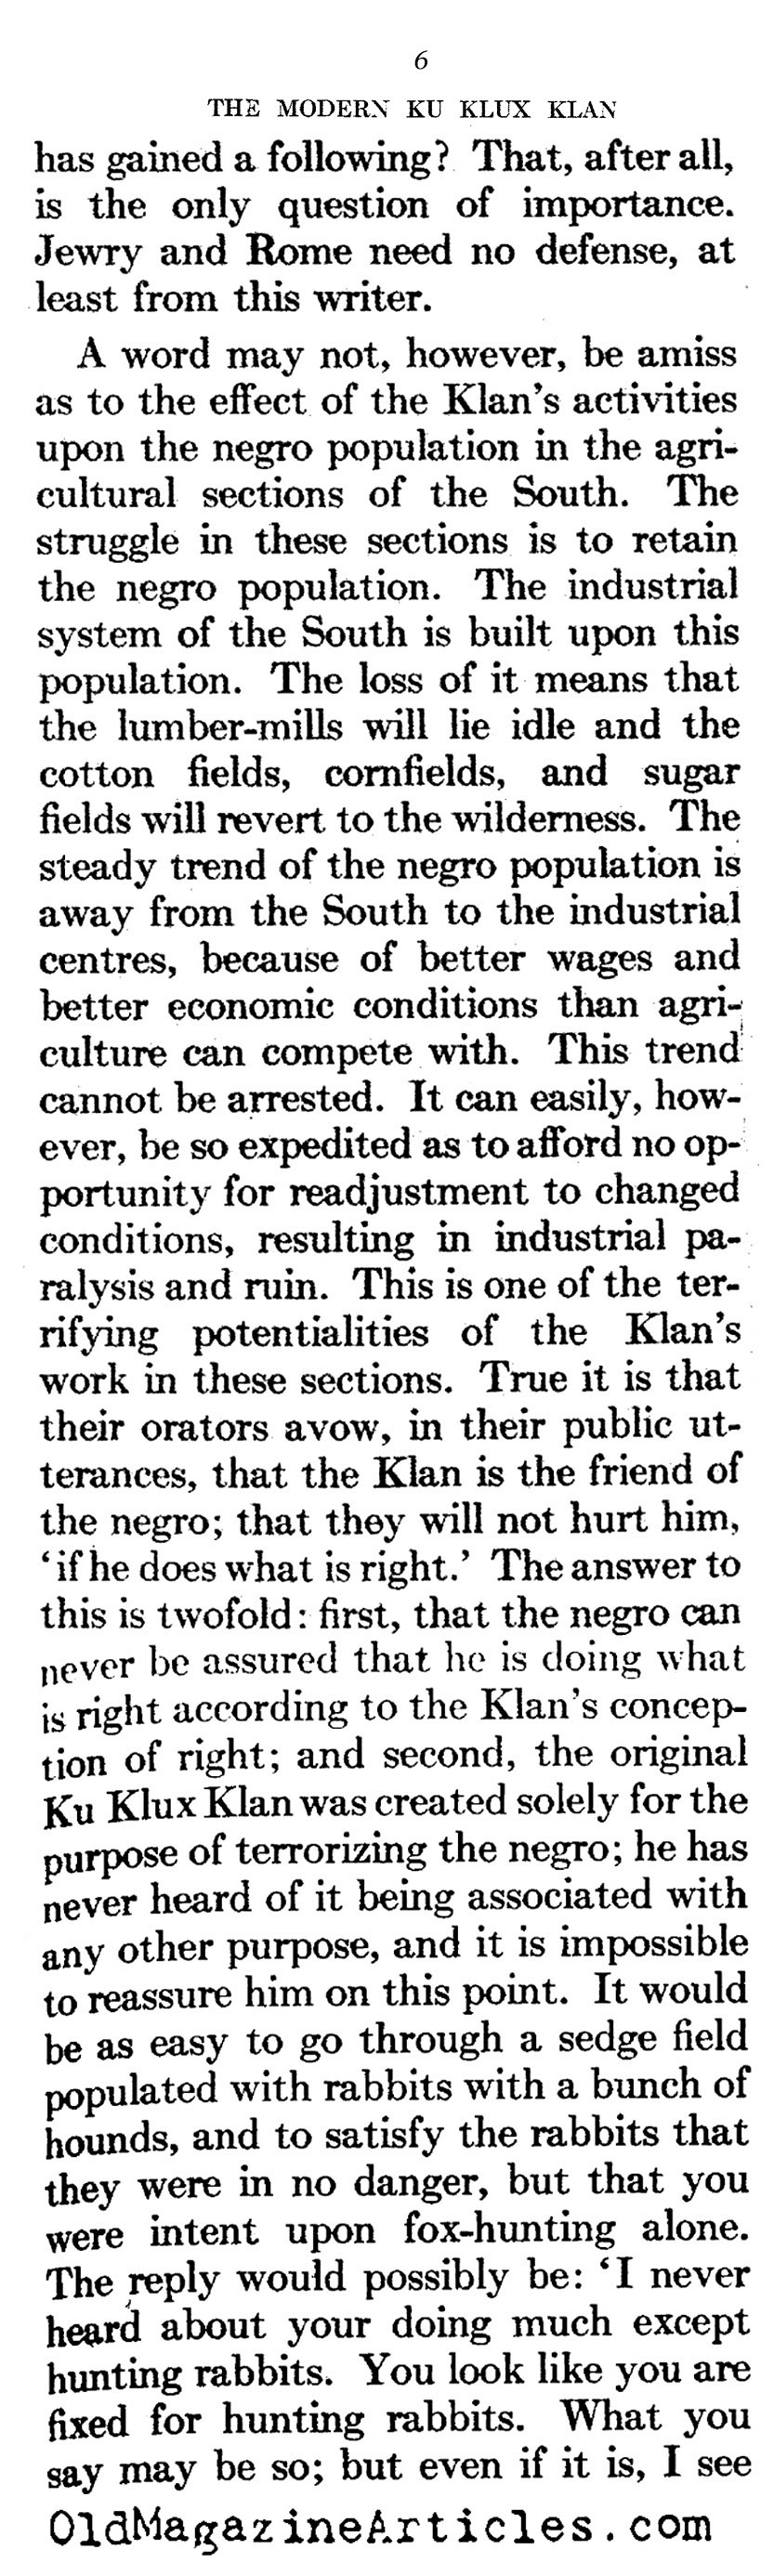 The Modern Klan (Atlantic Monthly, 1922)